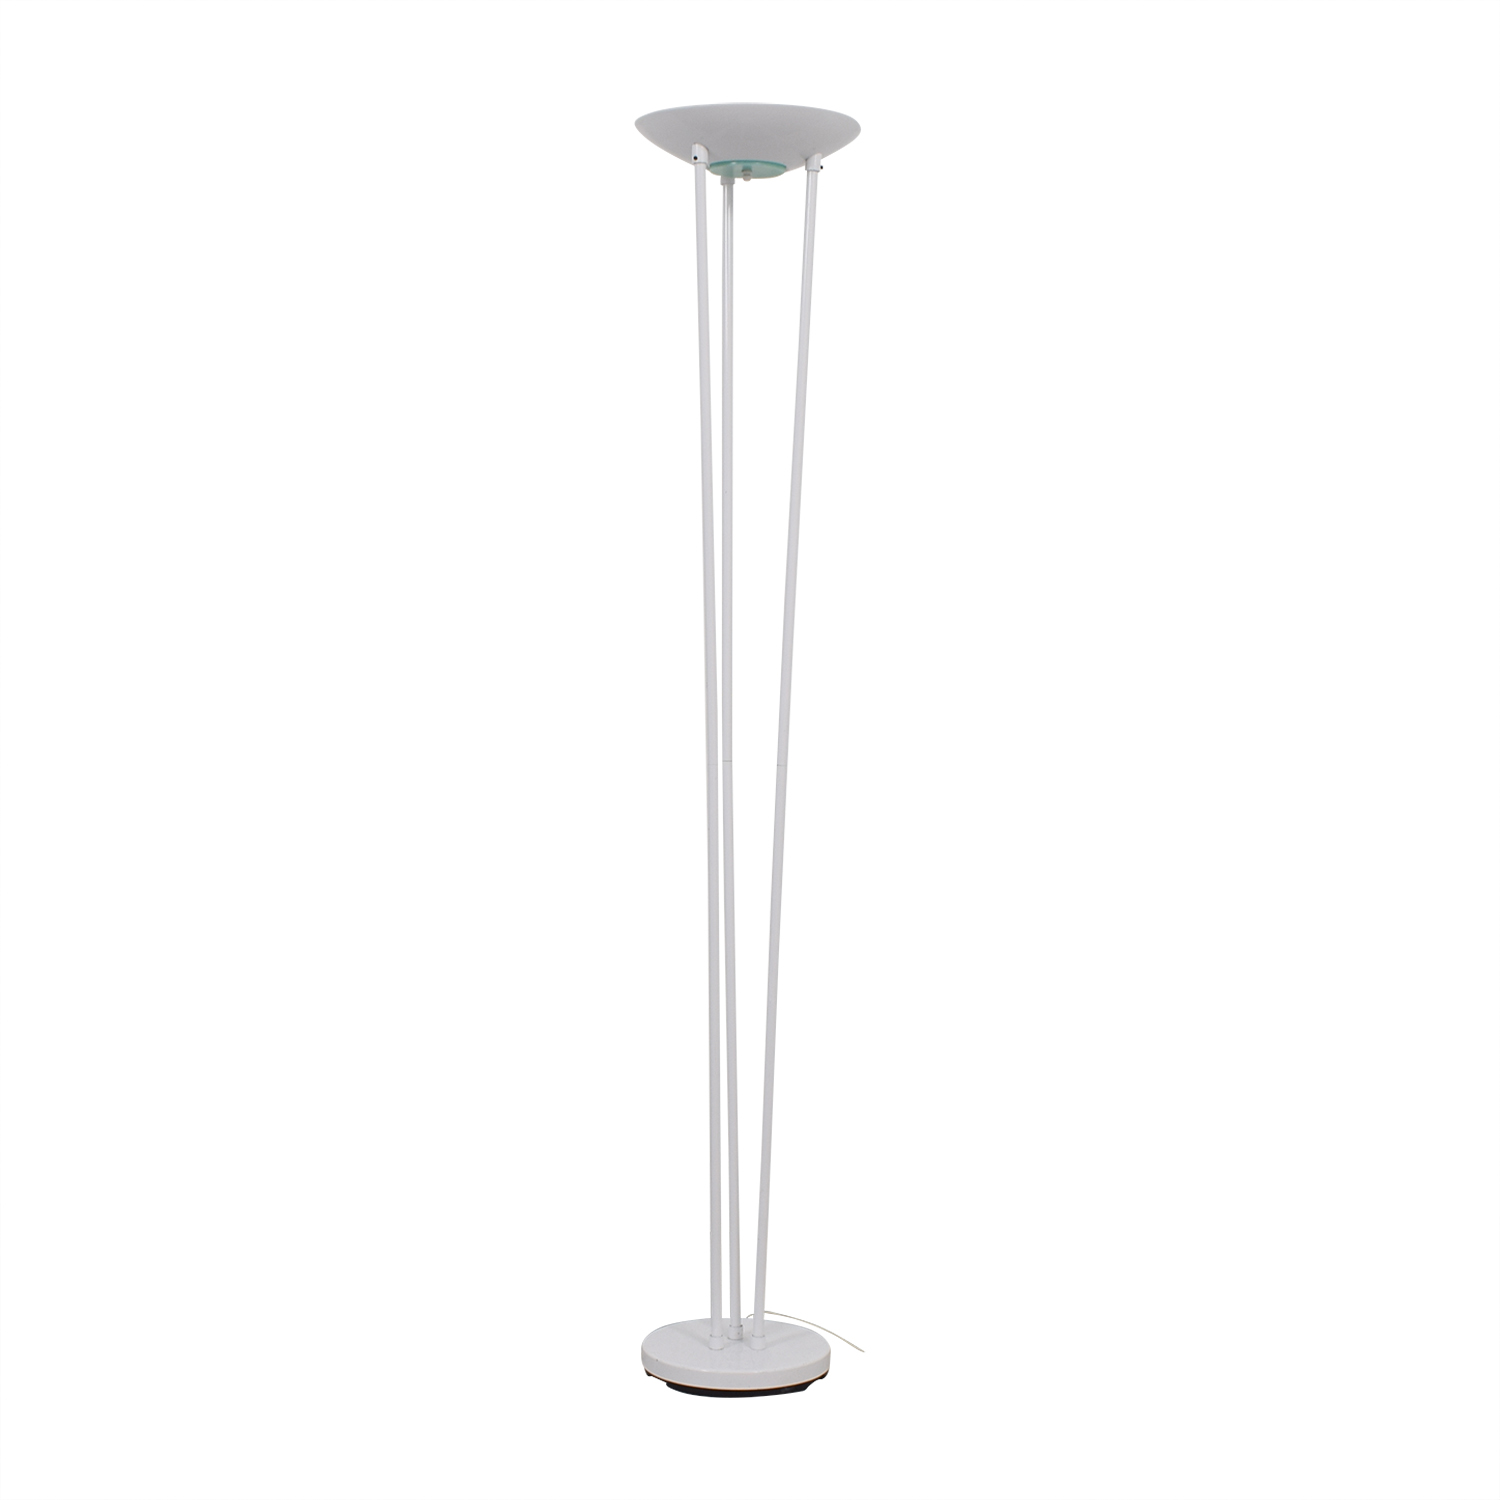 Torchiere Torchiere Classic White Halogen Floor Lamp for sale